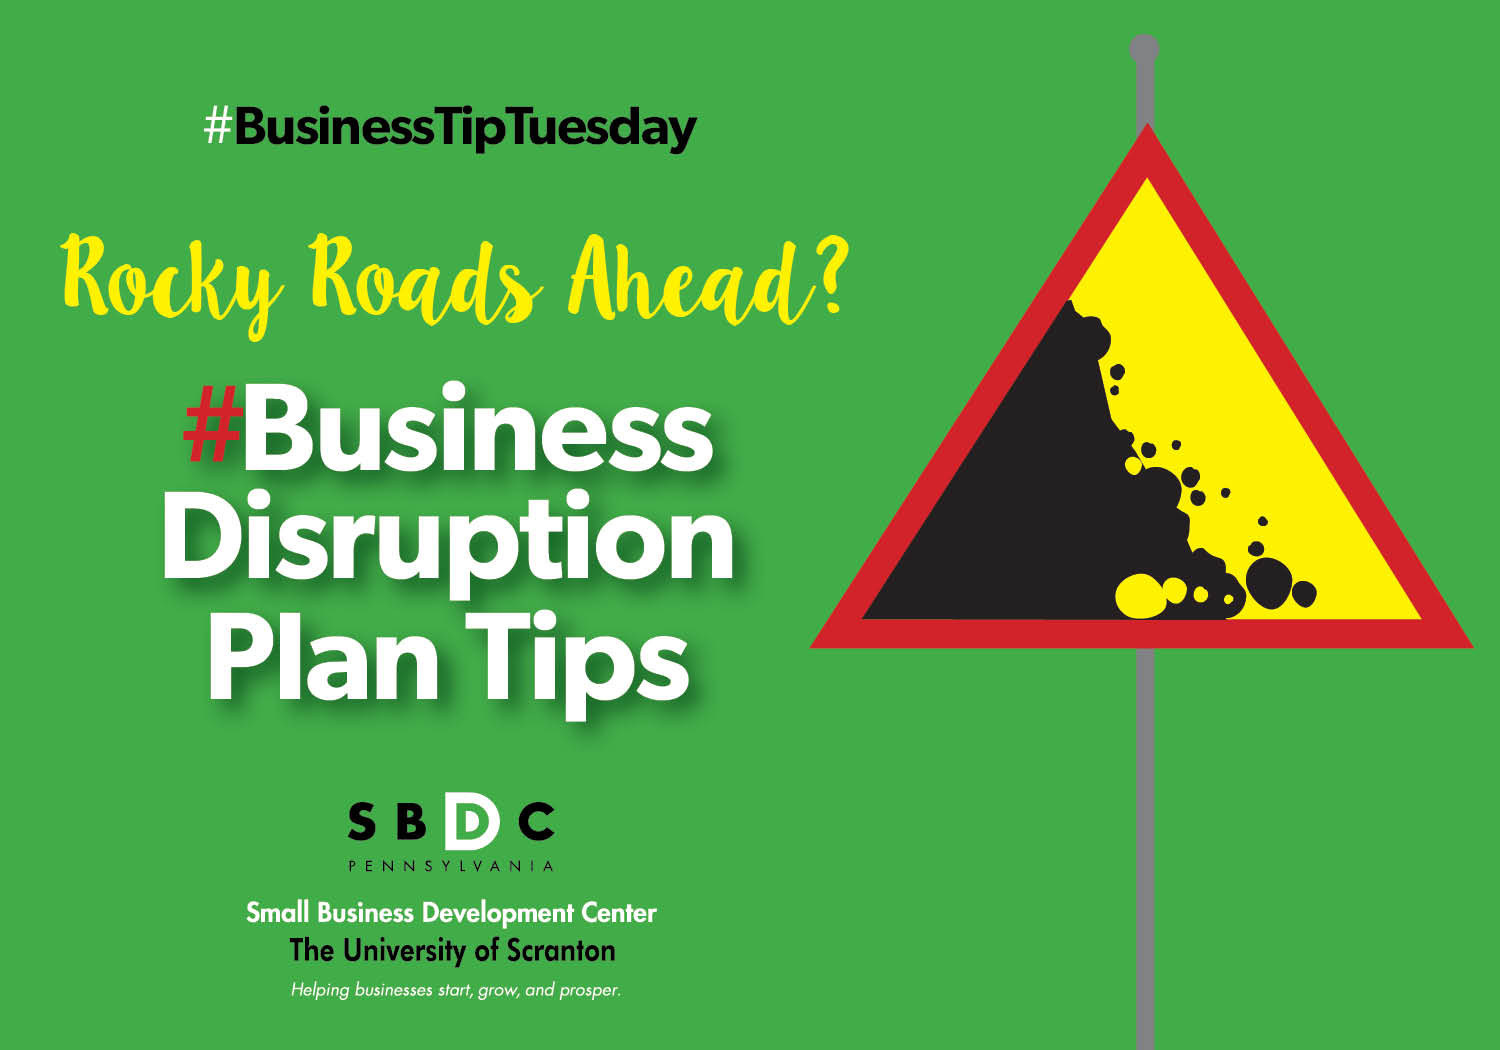 #BusinessTipTuesday- Business Disruption Plan Tips